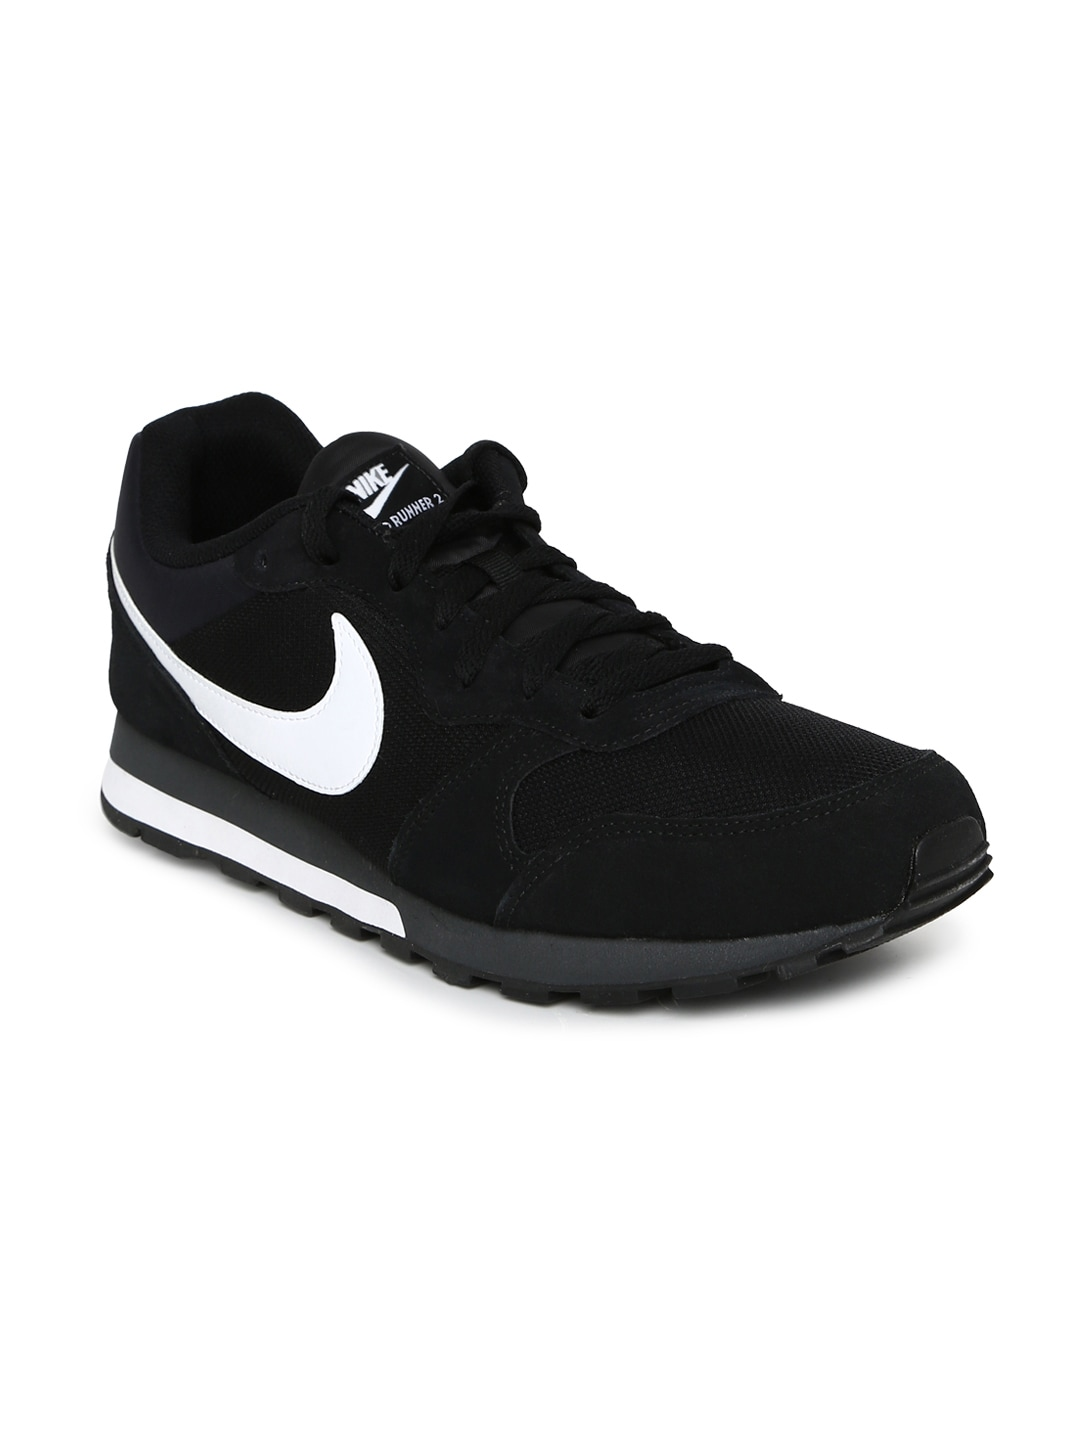 735964a90b8d Nike Trousers Tights Casual Shoes - Buy Nike Trousers Tights Casual Shoes  online in India